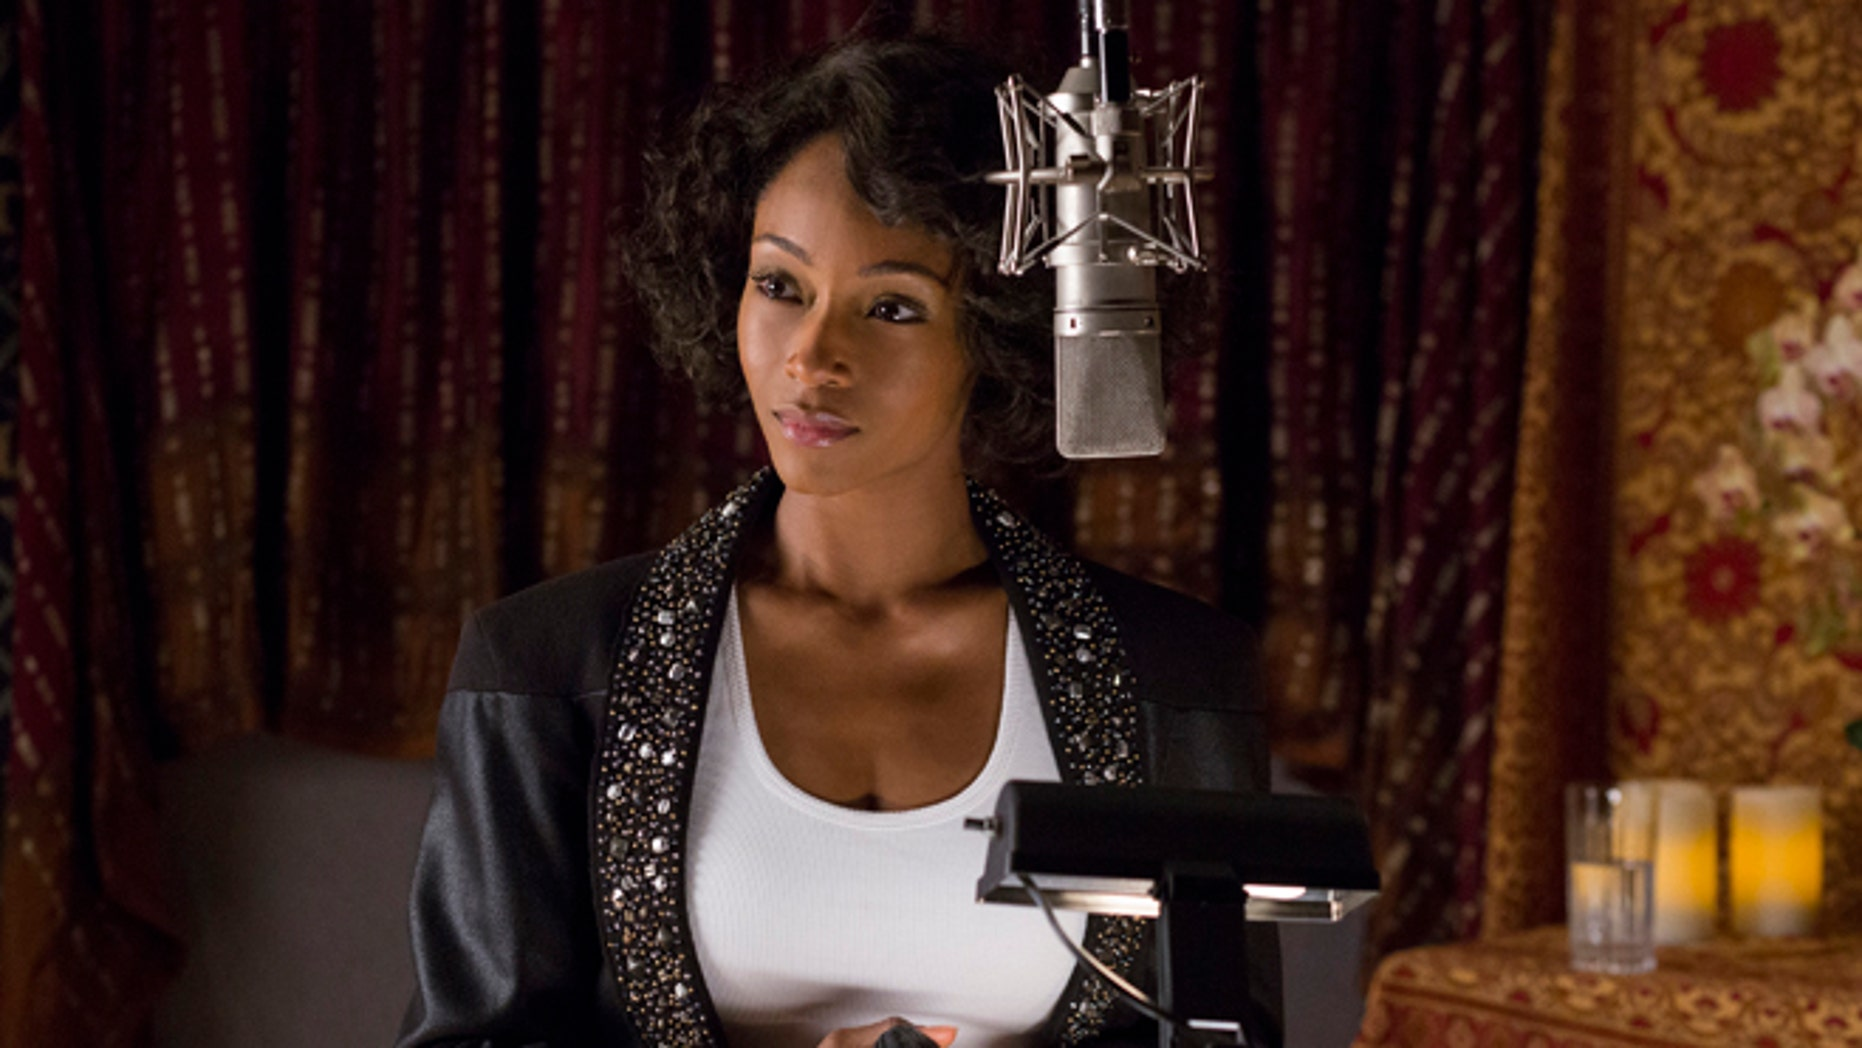 """In this image released by Lifetime, Yaya DaCosta stars as Whitney Houston in the Lifetime Original Movie, """"Whitney,"""" premiering Saturday, Jan. 17, 2015 at 8pm ET/PT on Lifetime. (AP Photo/Lifetime, Jack Zeman)"""